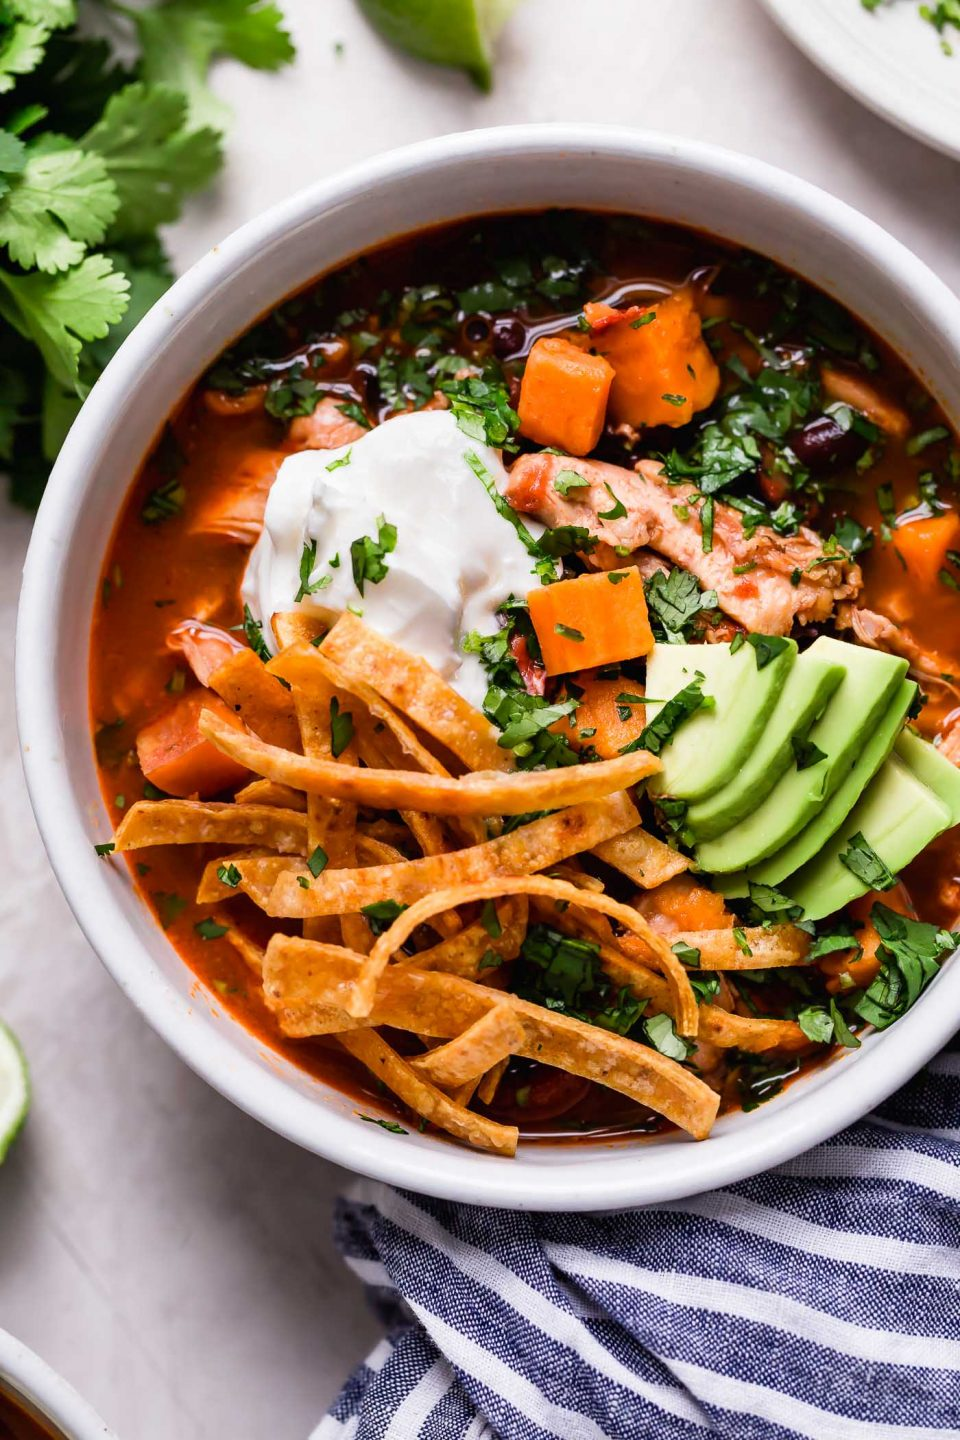 An overhead shot of a white bowl filled with Tortilla Soup topped with sour cream, fried tortilla strips, sliced avocado, & chopped cilantro. The bowl sits on top of a white background with a bunch of cilantro and a blue and white striped linen napkin.